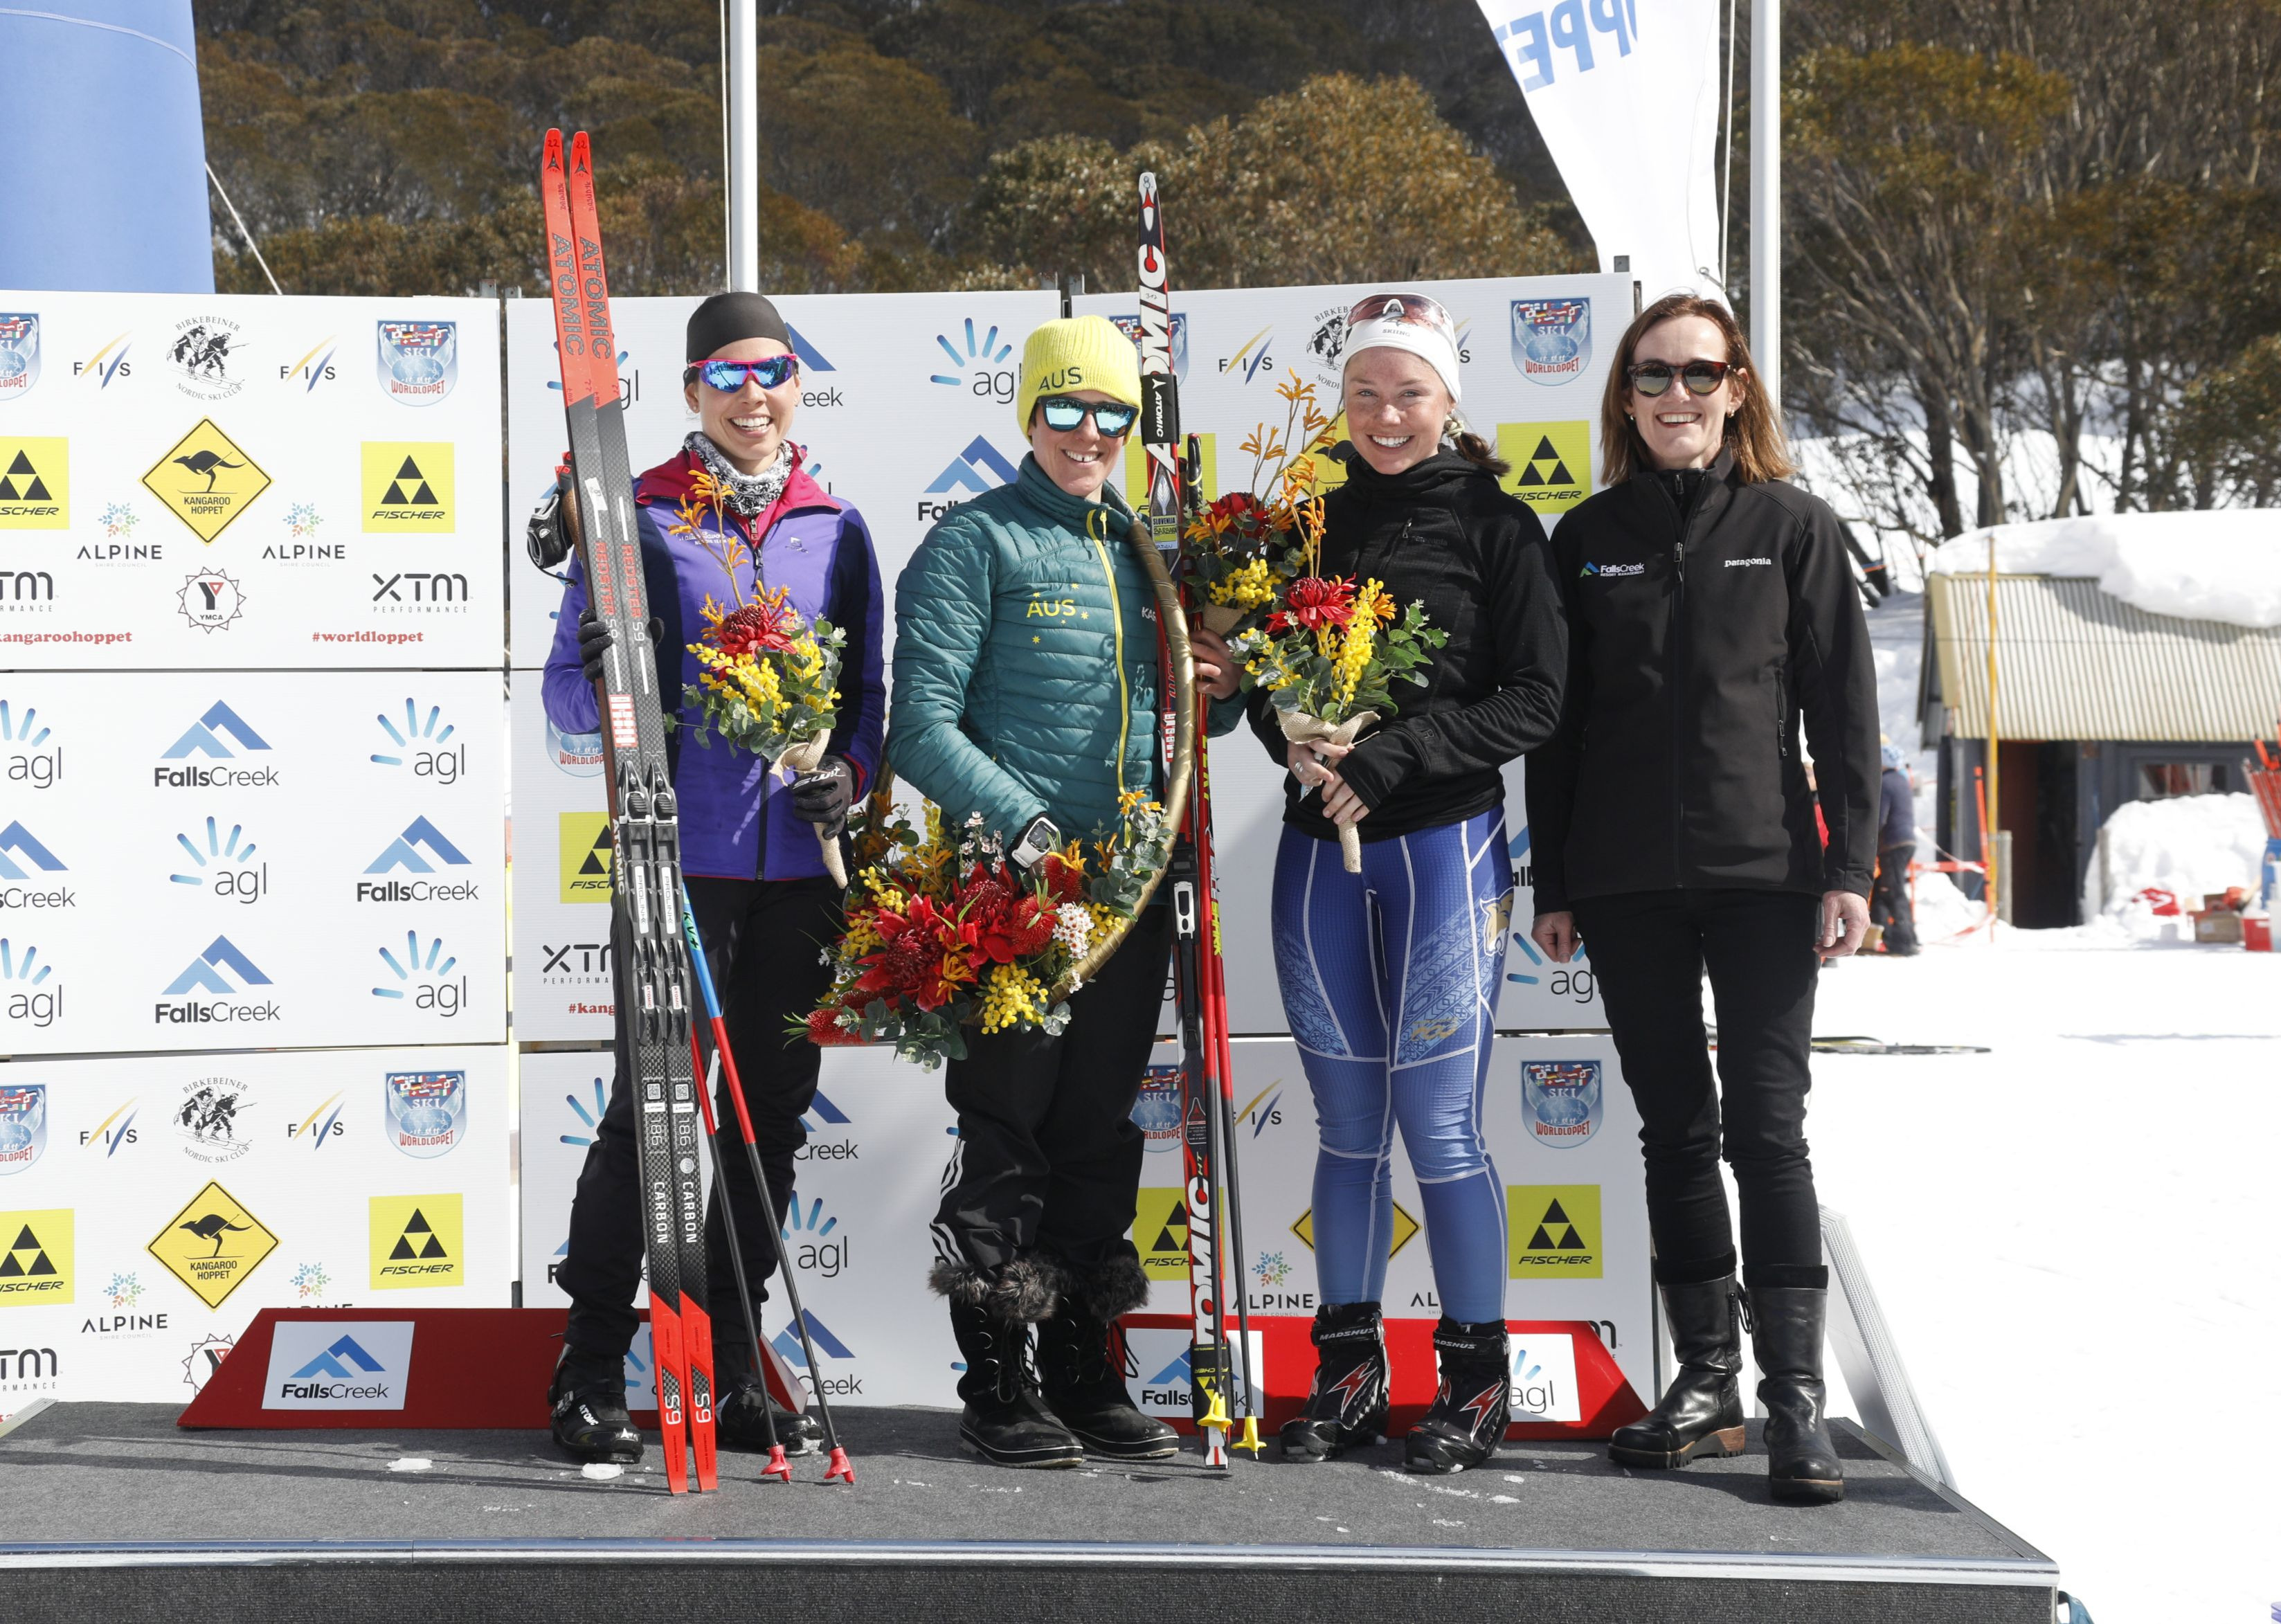 Hoppet podium - Women